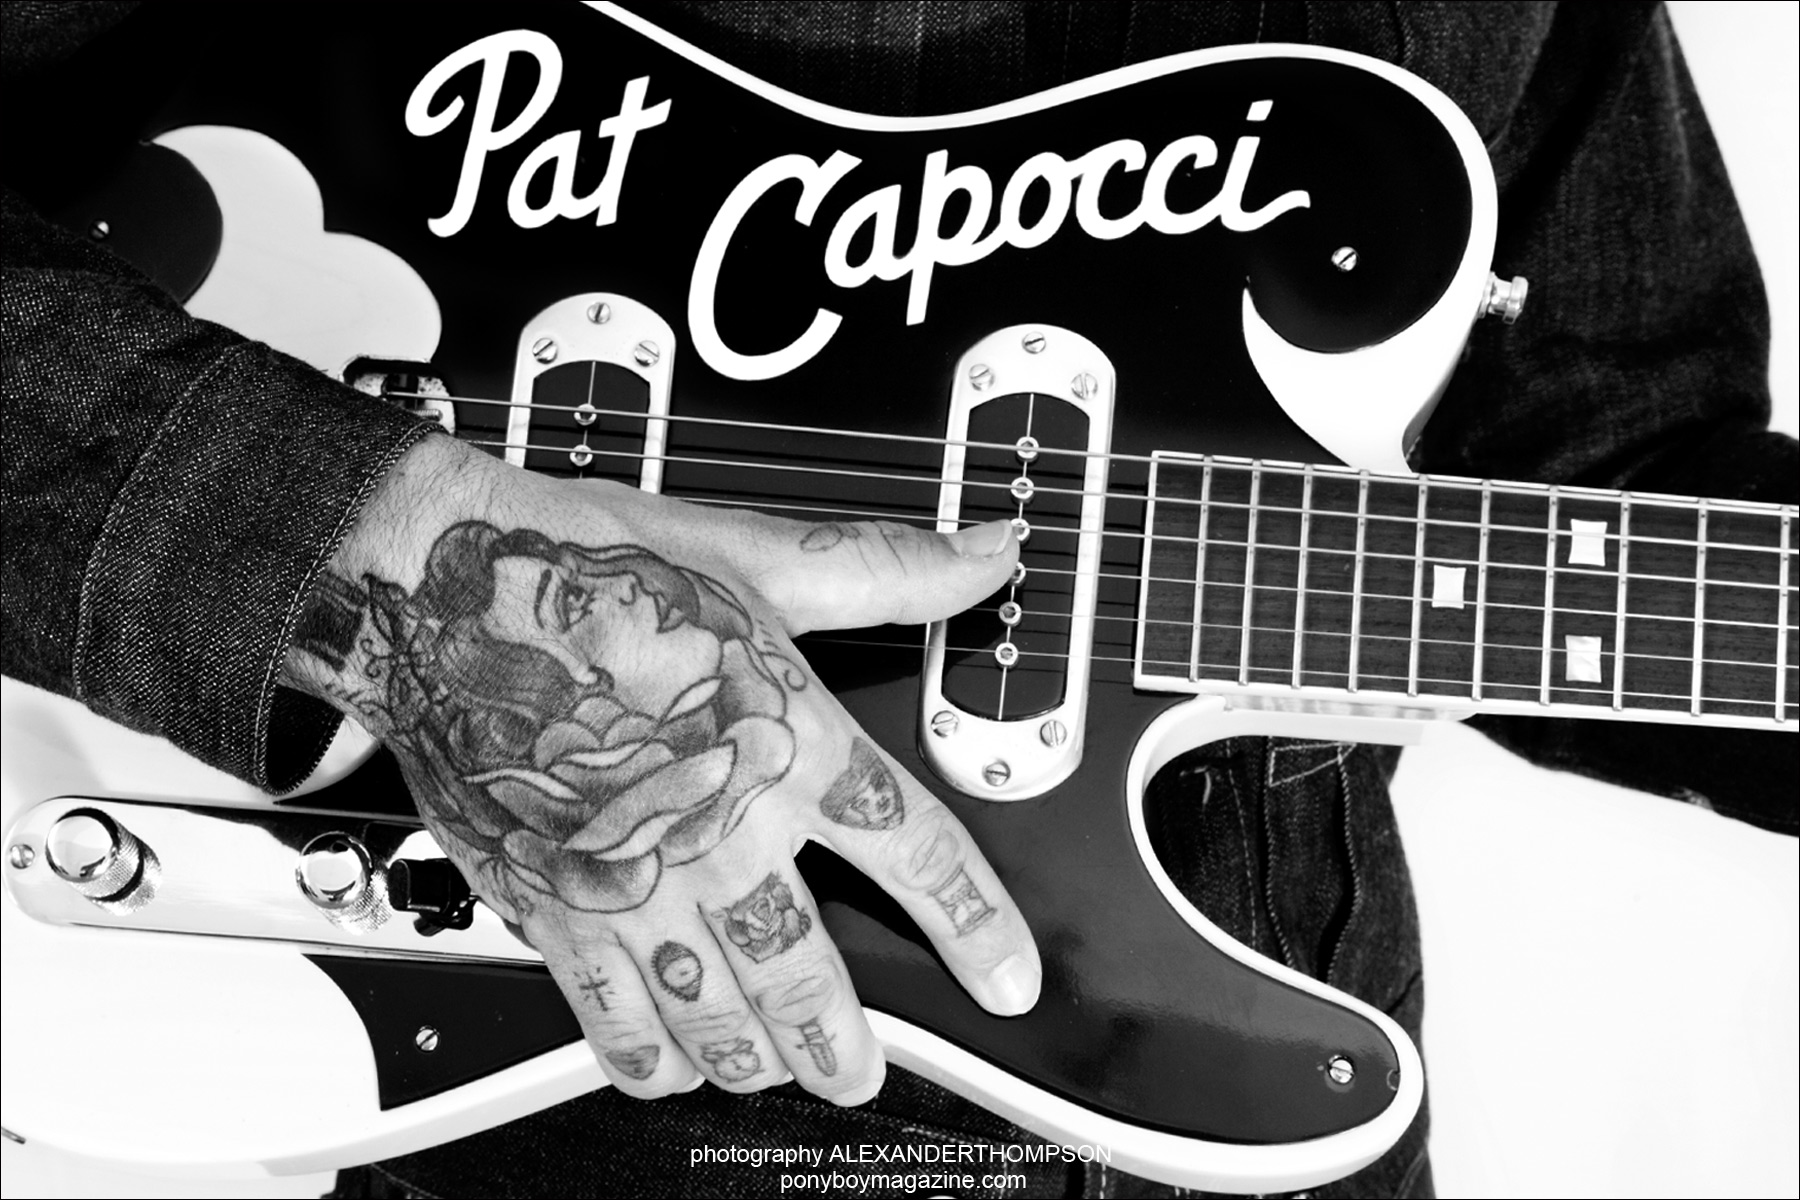 Australian rockabilly musician Pat Capocci, opening spread for Ponyboy Magazine. Photographed by Alexander Thompson.